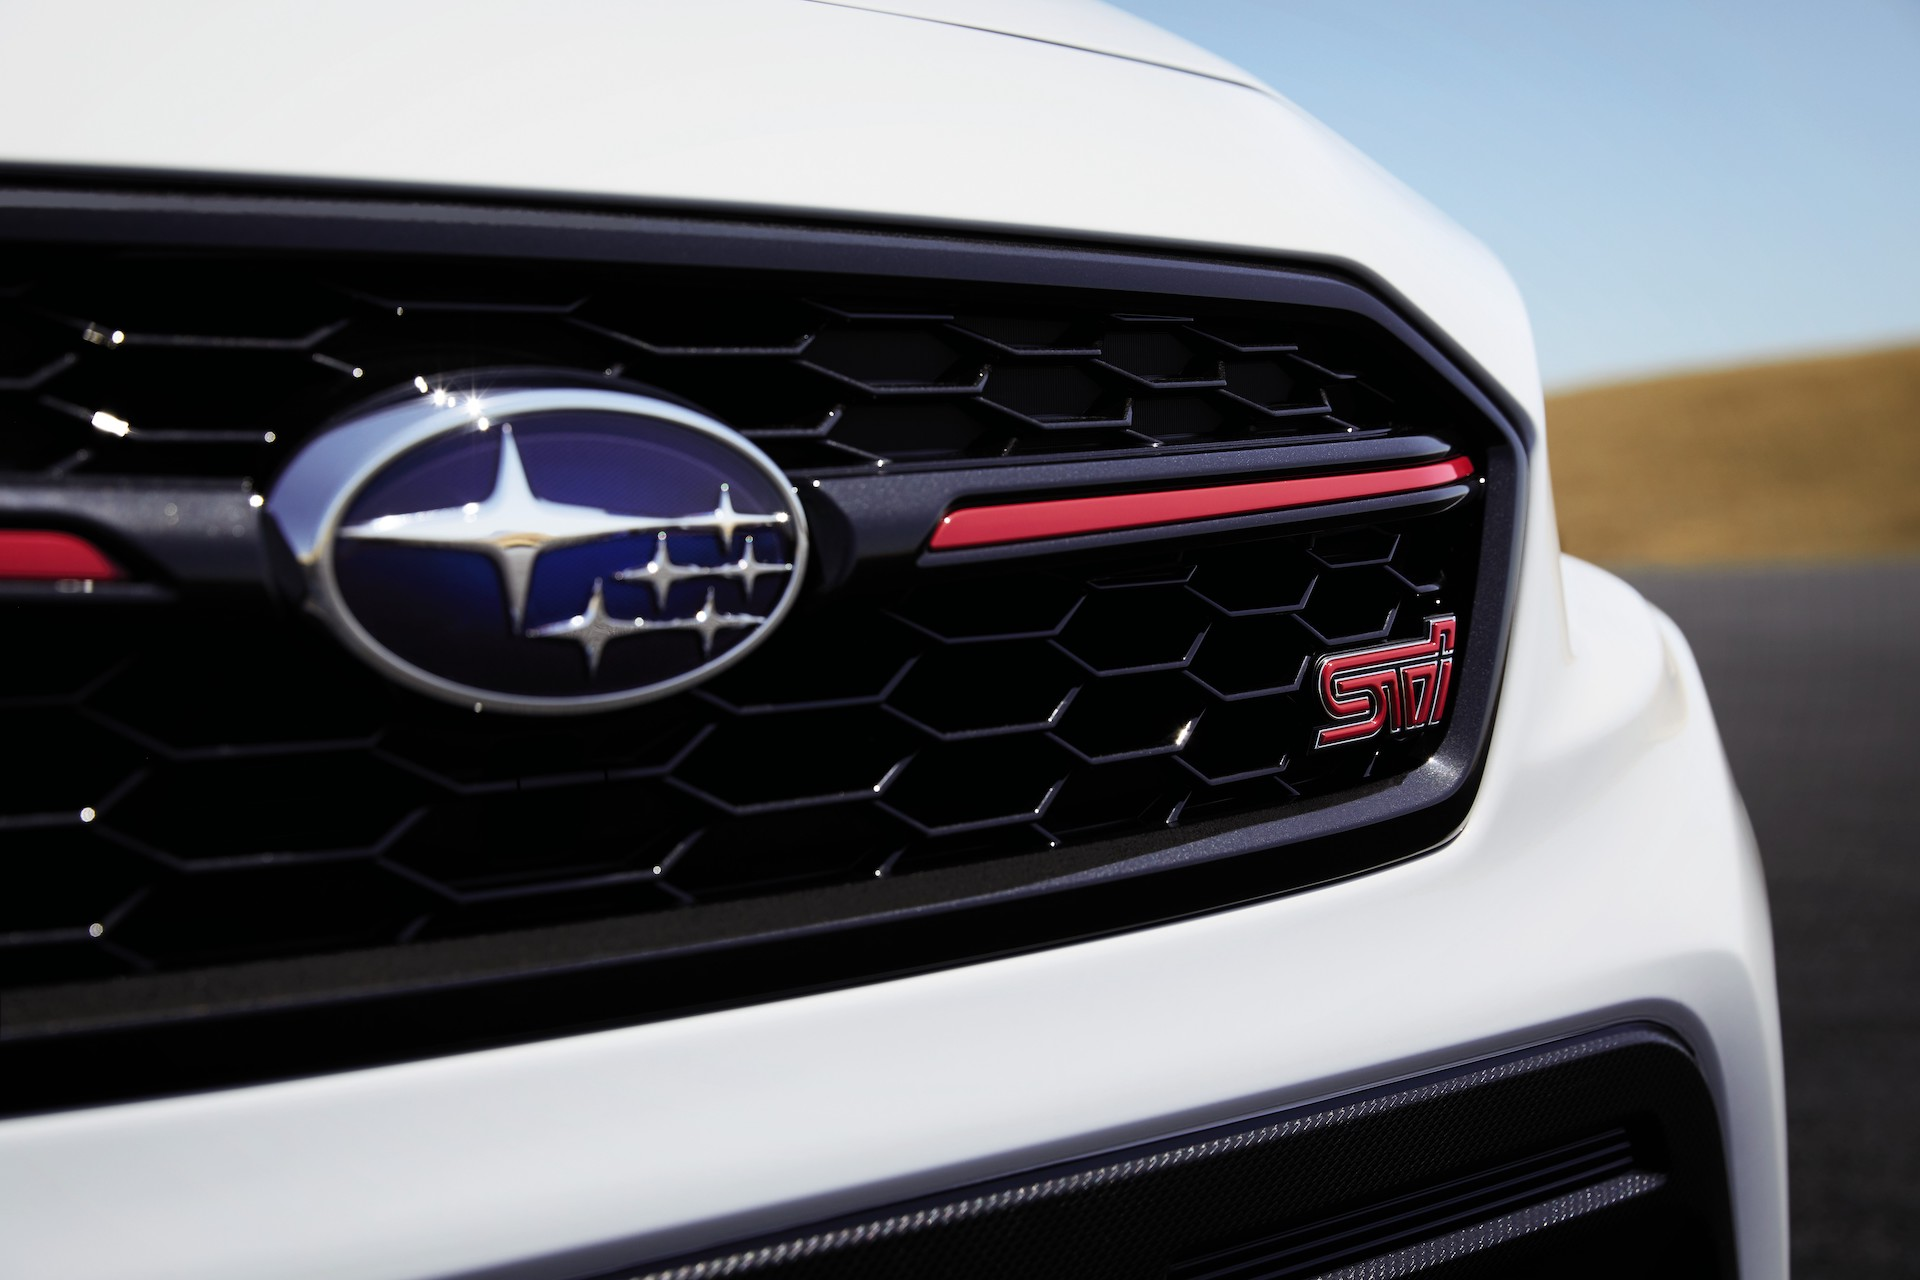 Next Subaru WRX STI reportedly coming with 400 horsepower, 2.4-liter flat-4 borrowed from Ascent